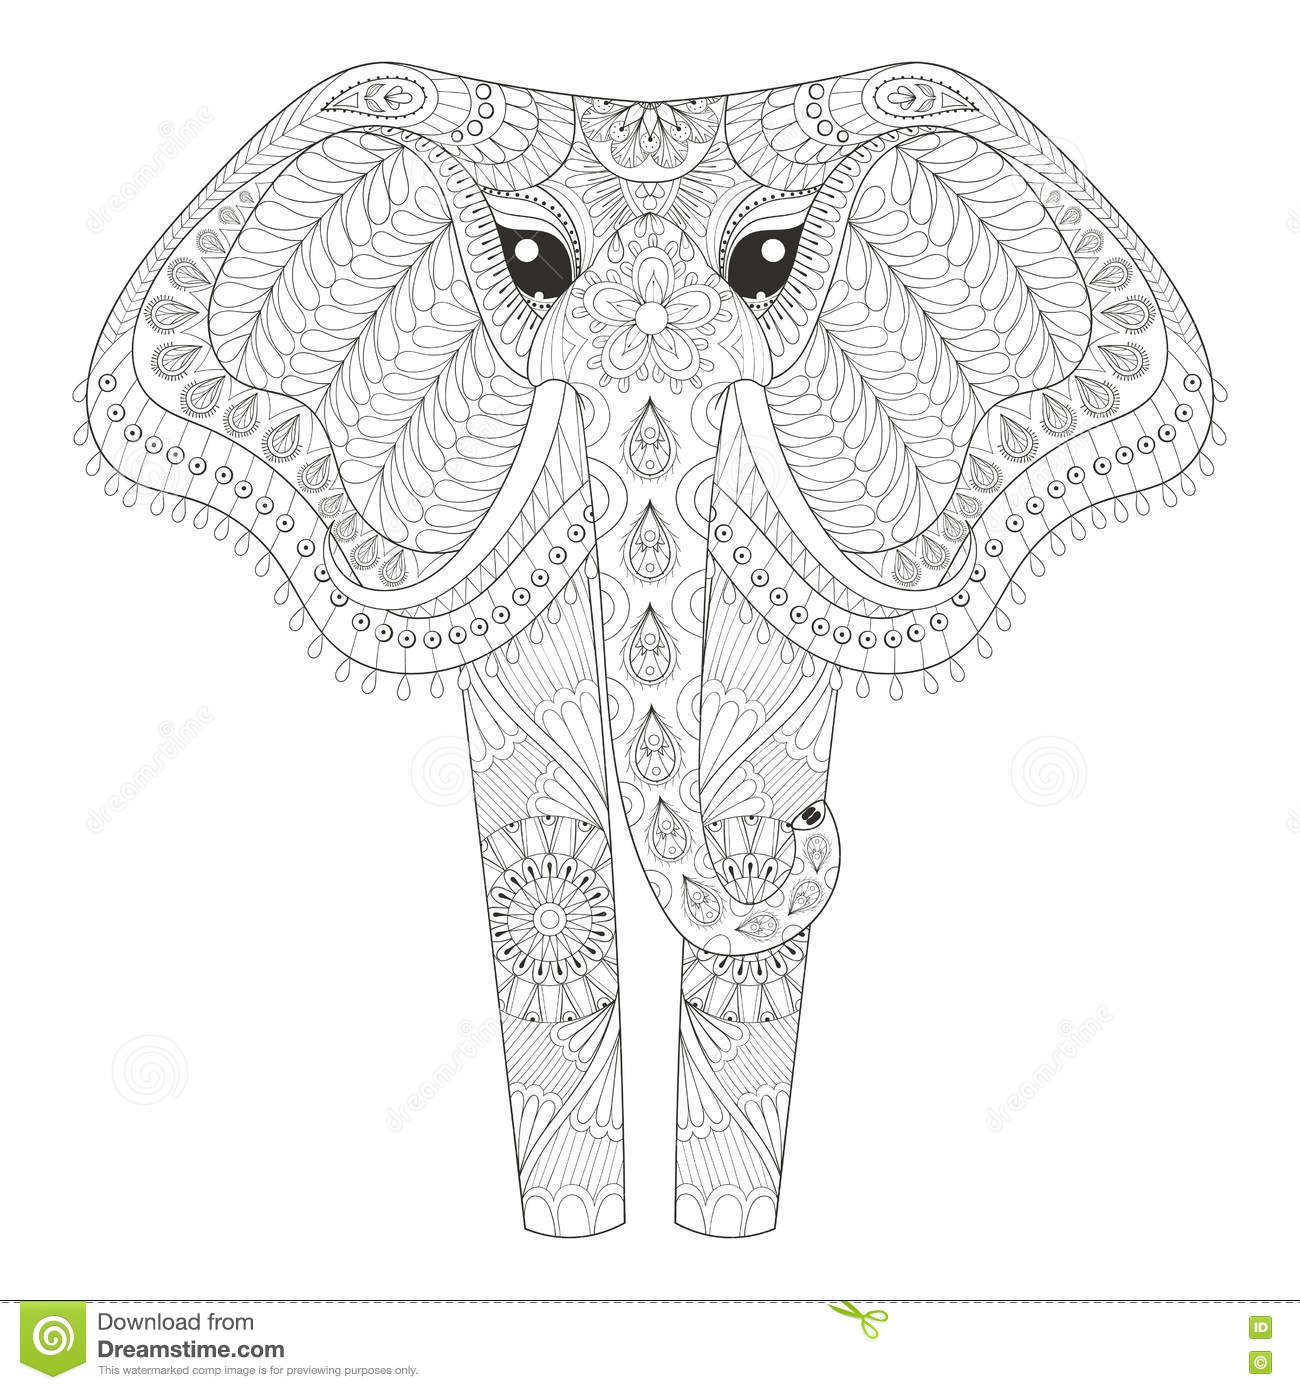 zentangle ornamental elephant for adult coloring pages hand dra royalty free stock images